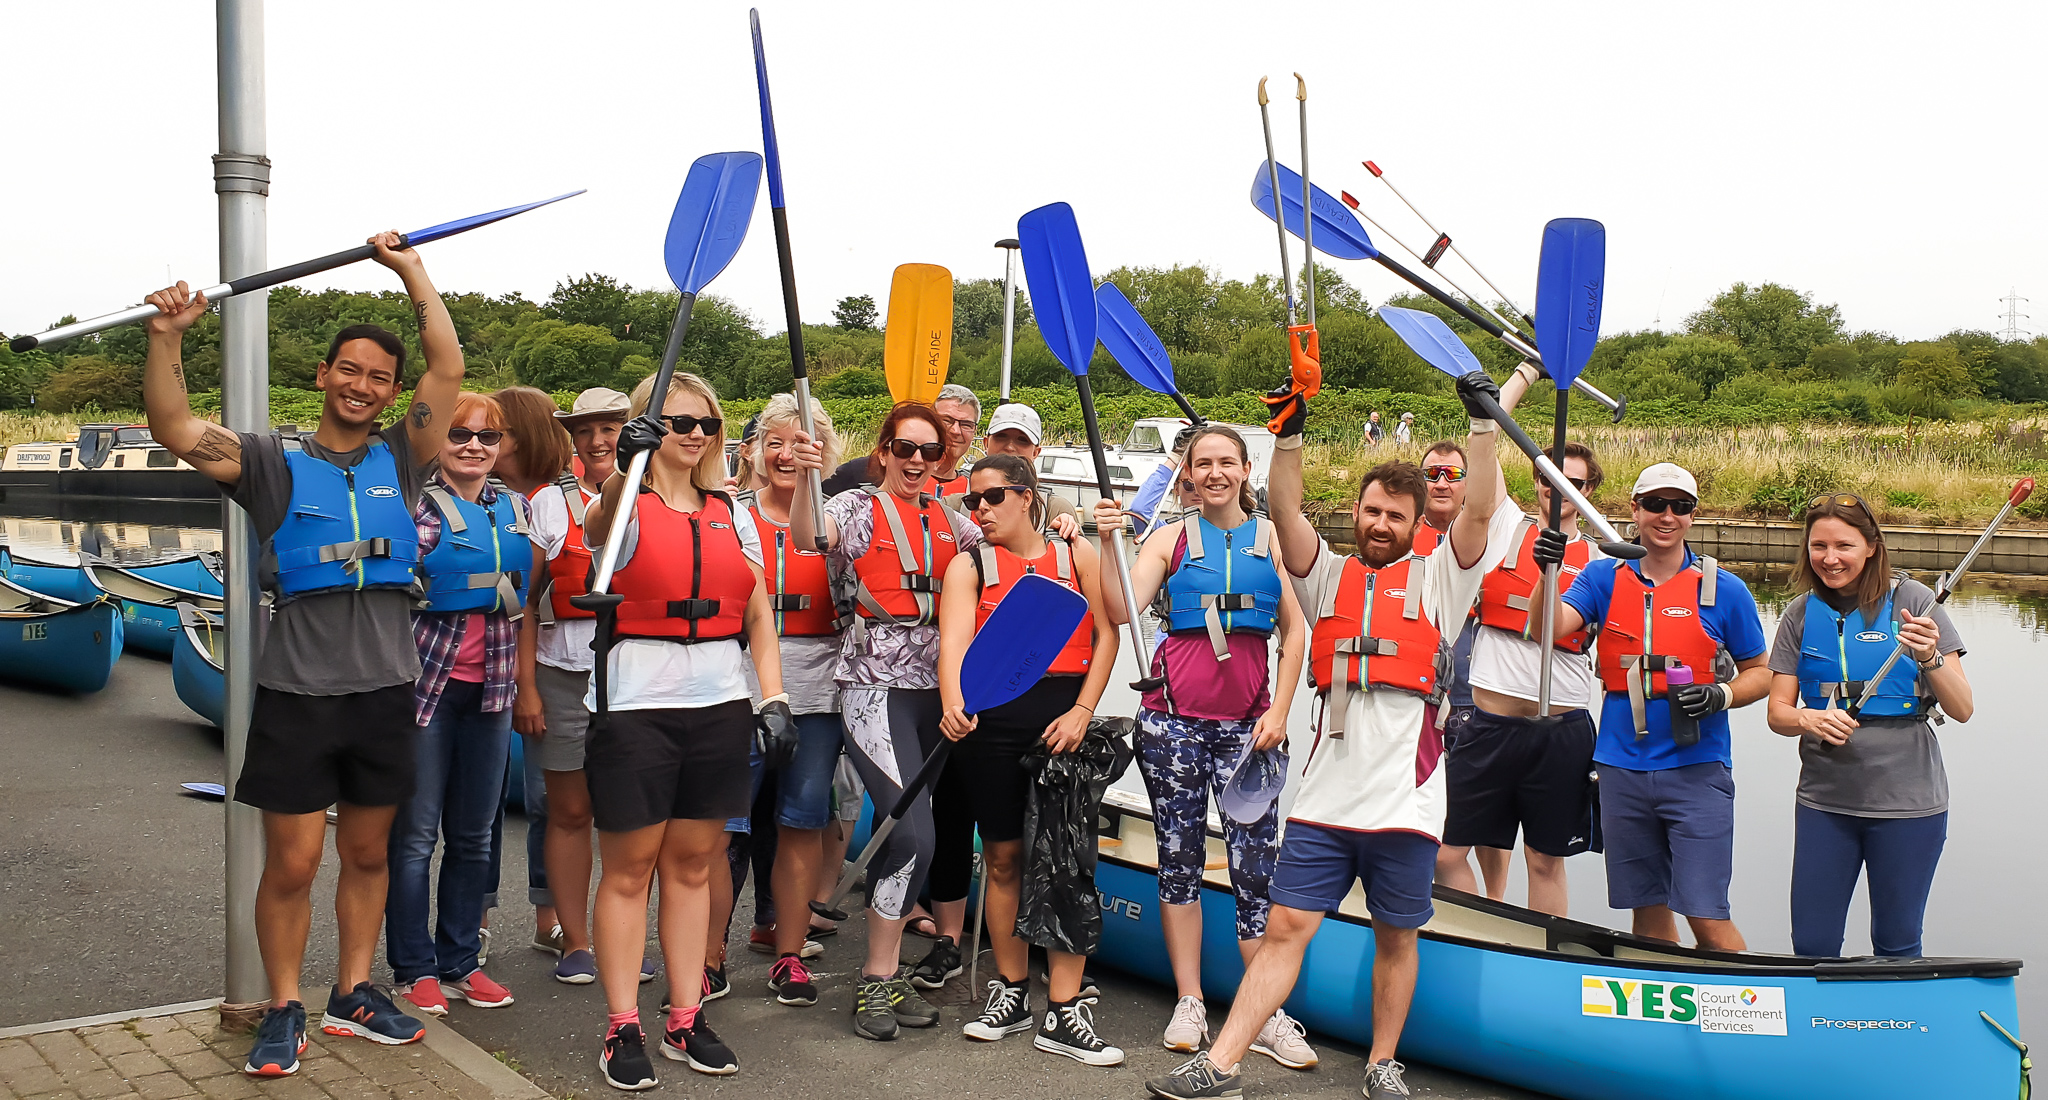 Forsters' Green Impact Group support charity Thames21 in River Lea clean-up